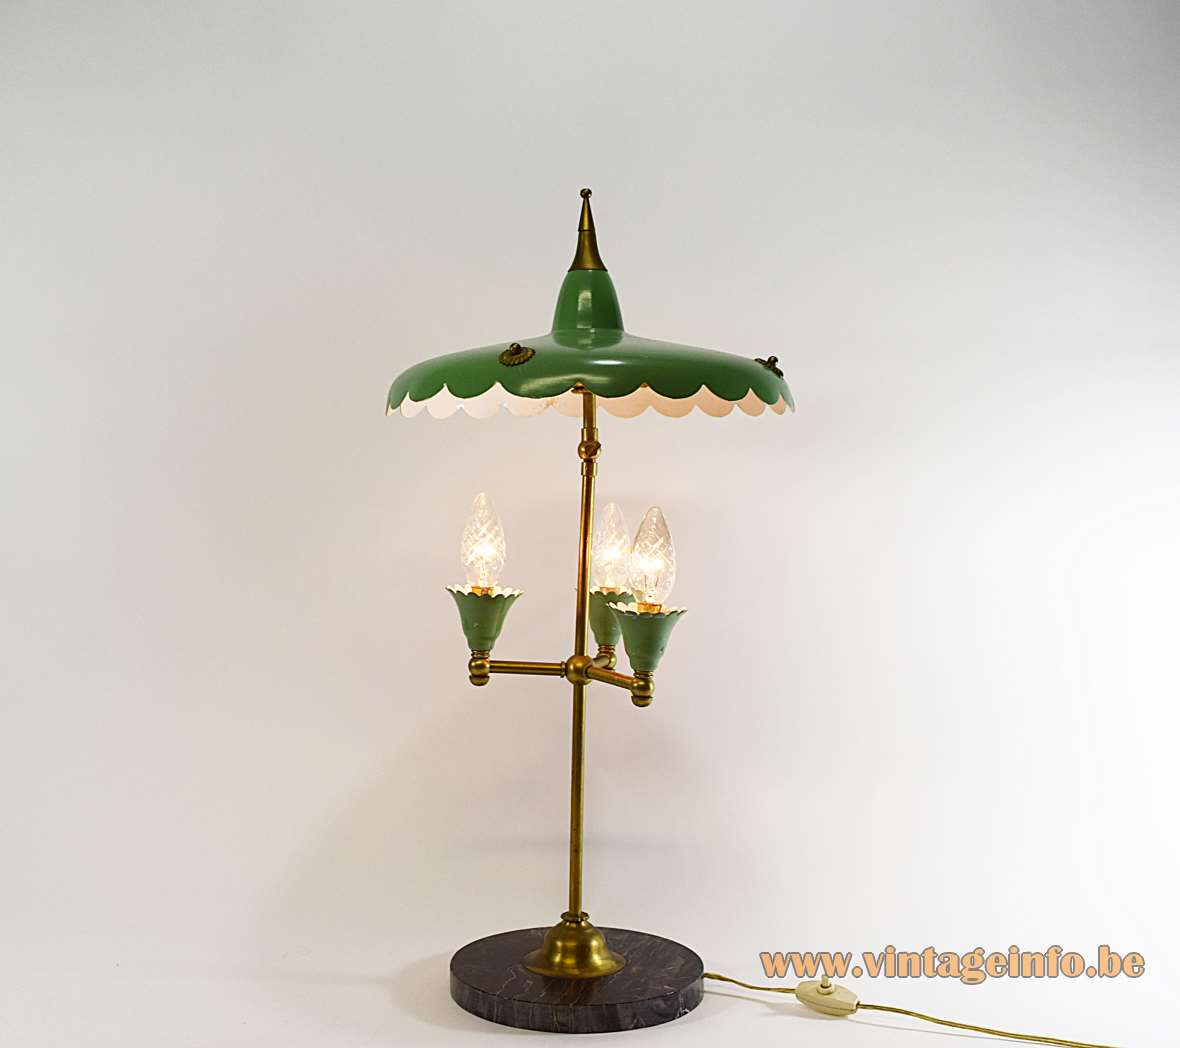 1950s Italian Parasol Table Lamp